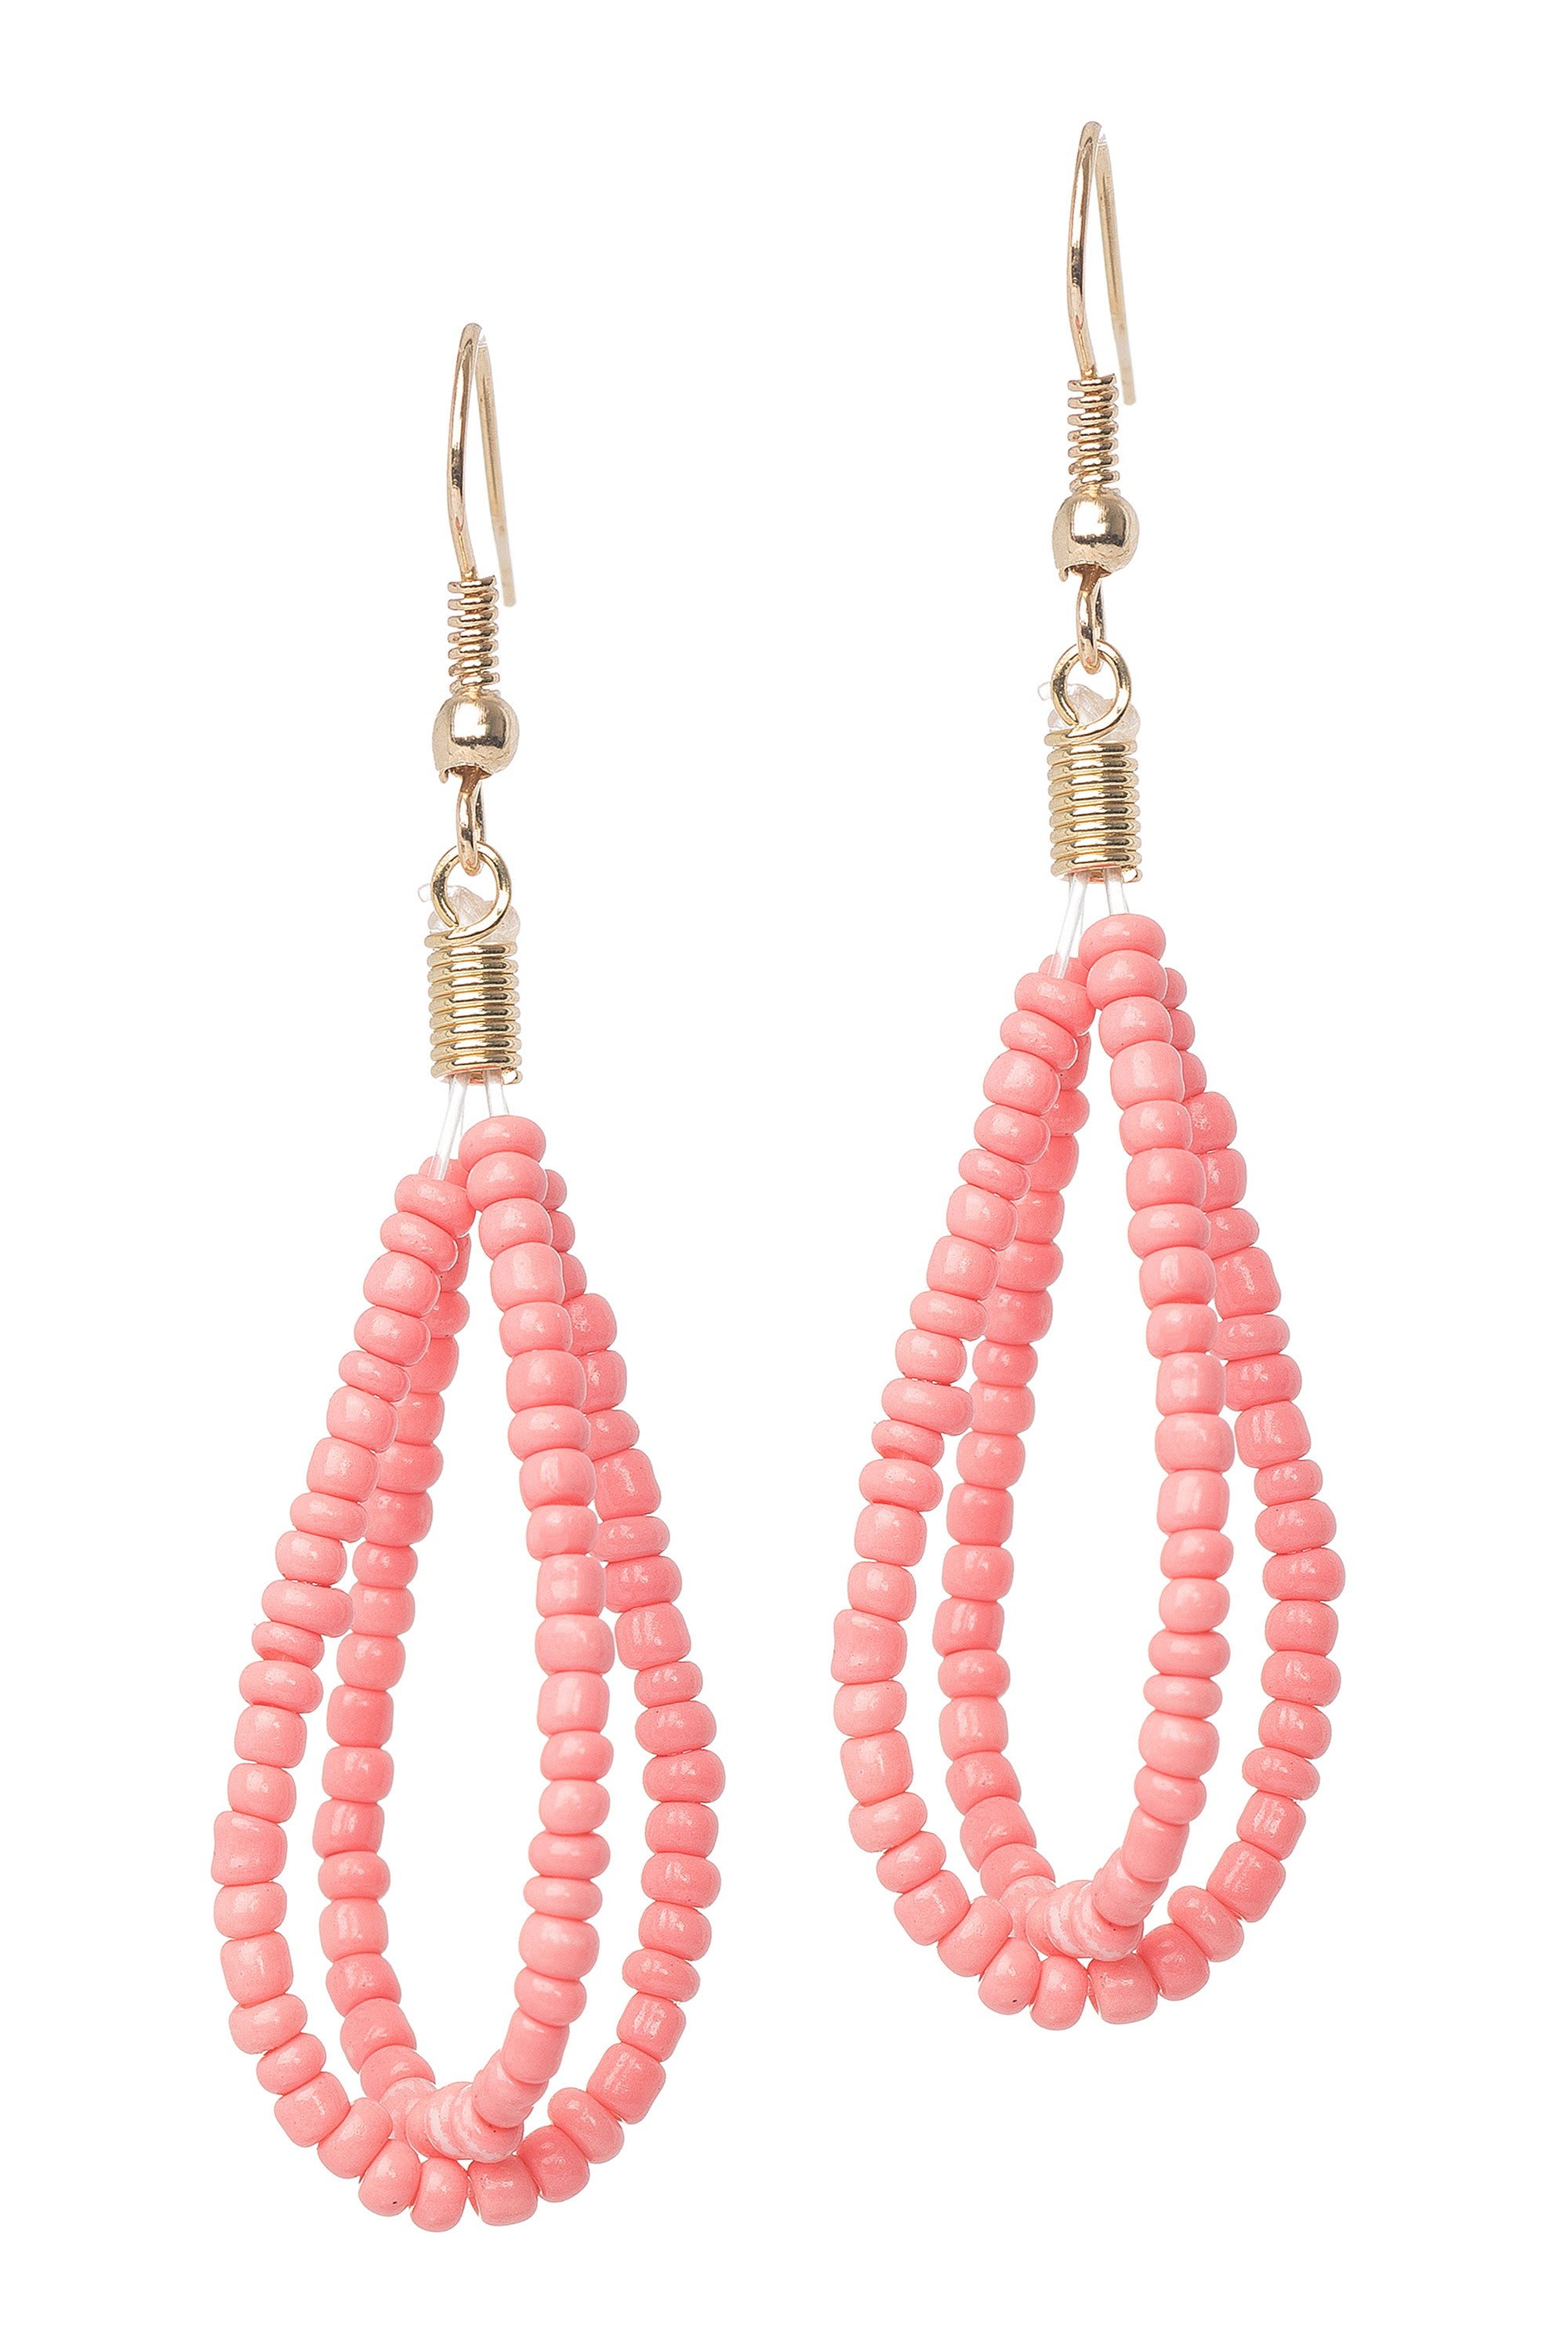 Type 3 Bound Beads Earrings